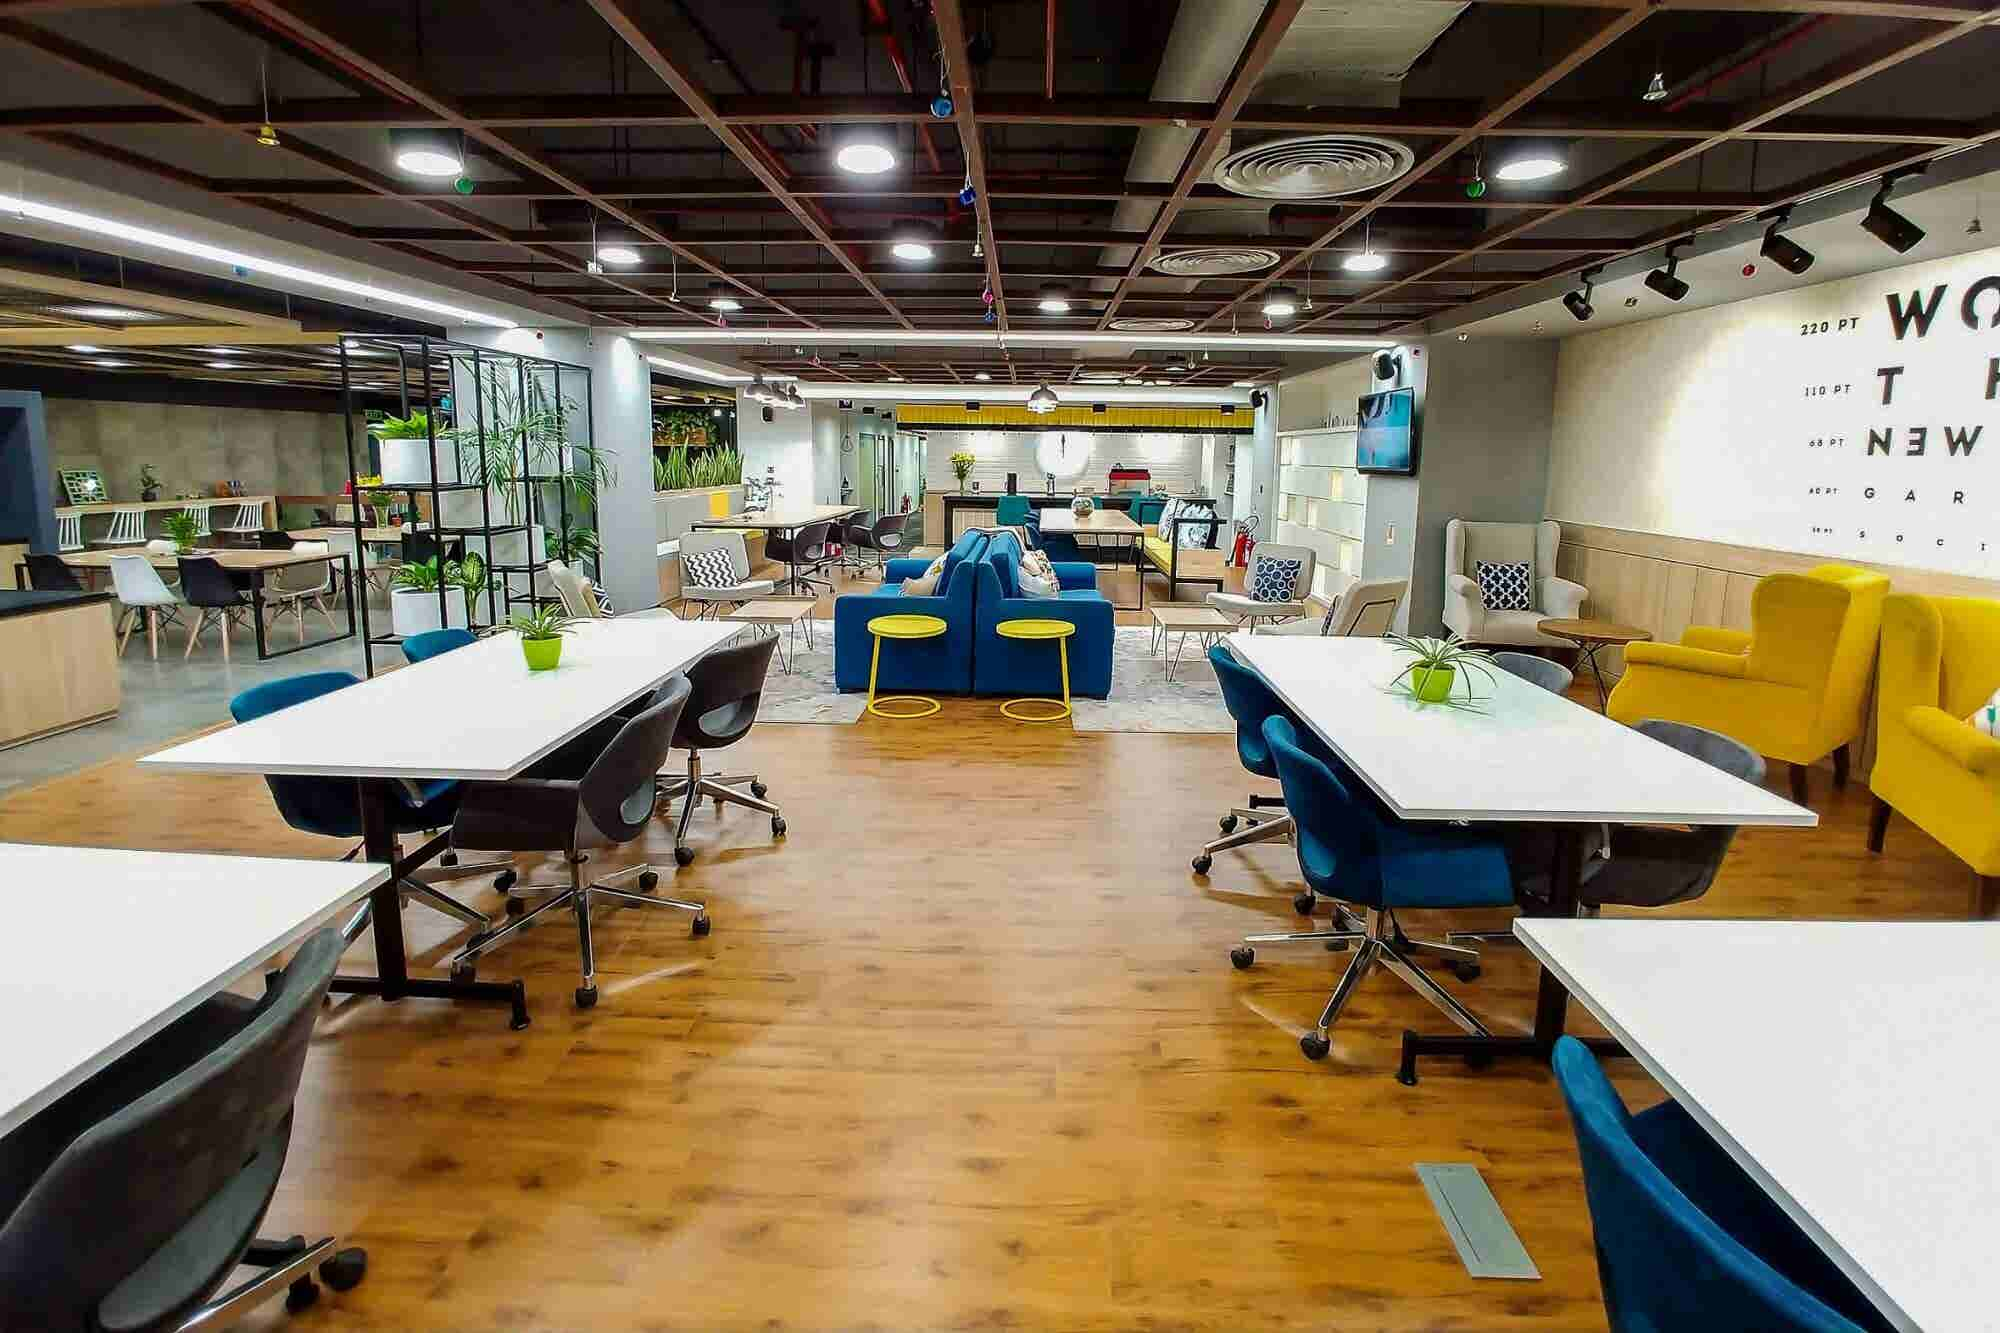 This Hong Kong Co-working Space is Spreading across Asia